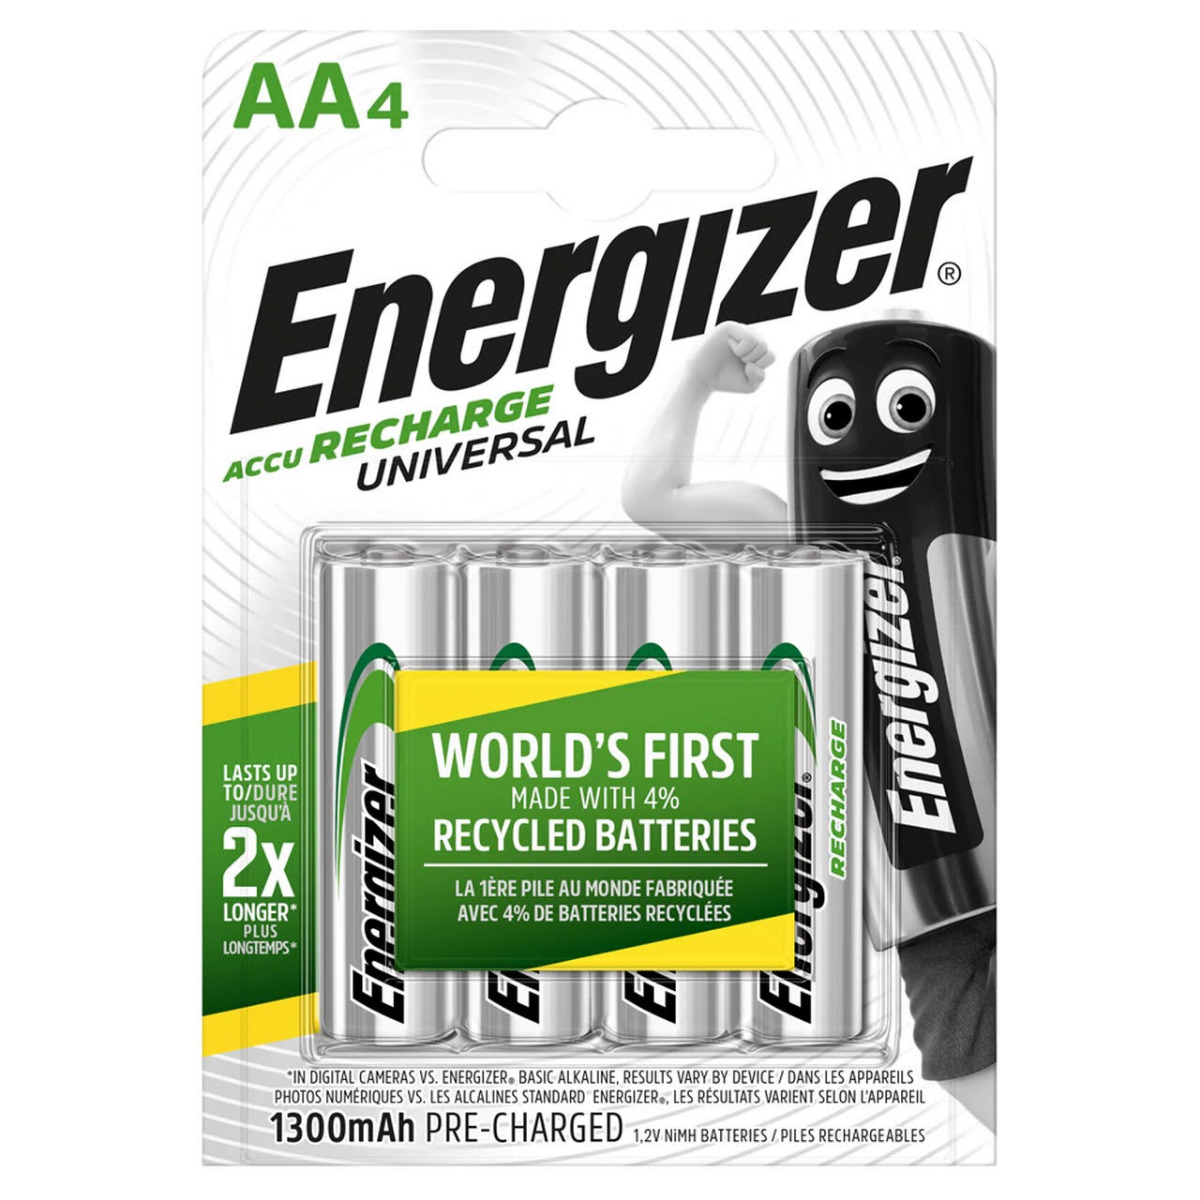 Energizer Universal AA HR6 1300mAh Rechargeable Batteries | 4 Pack